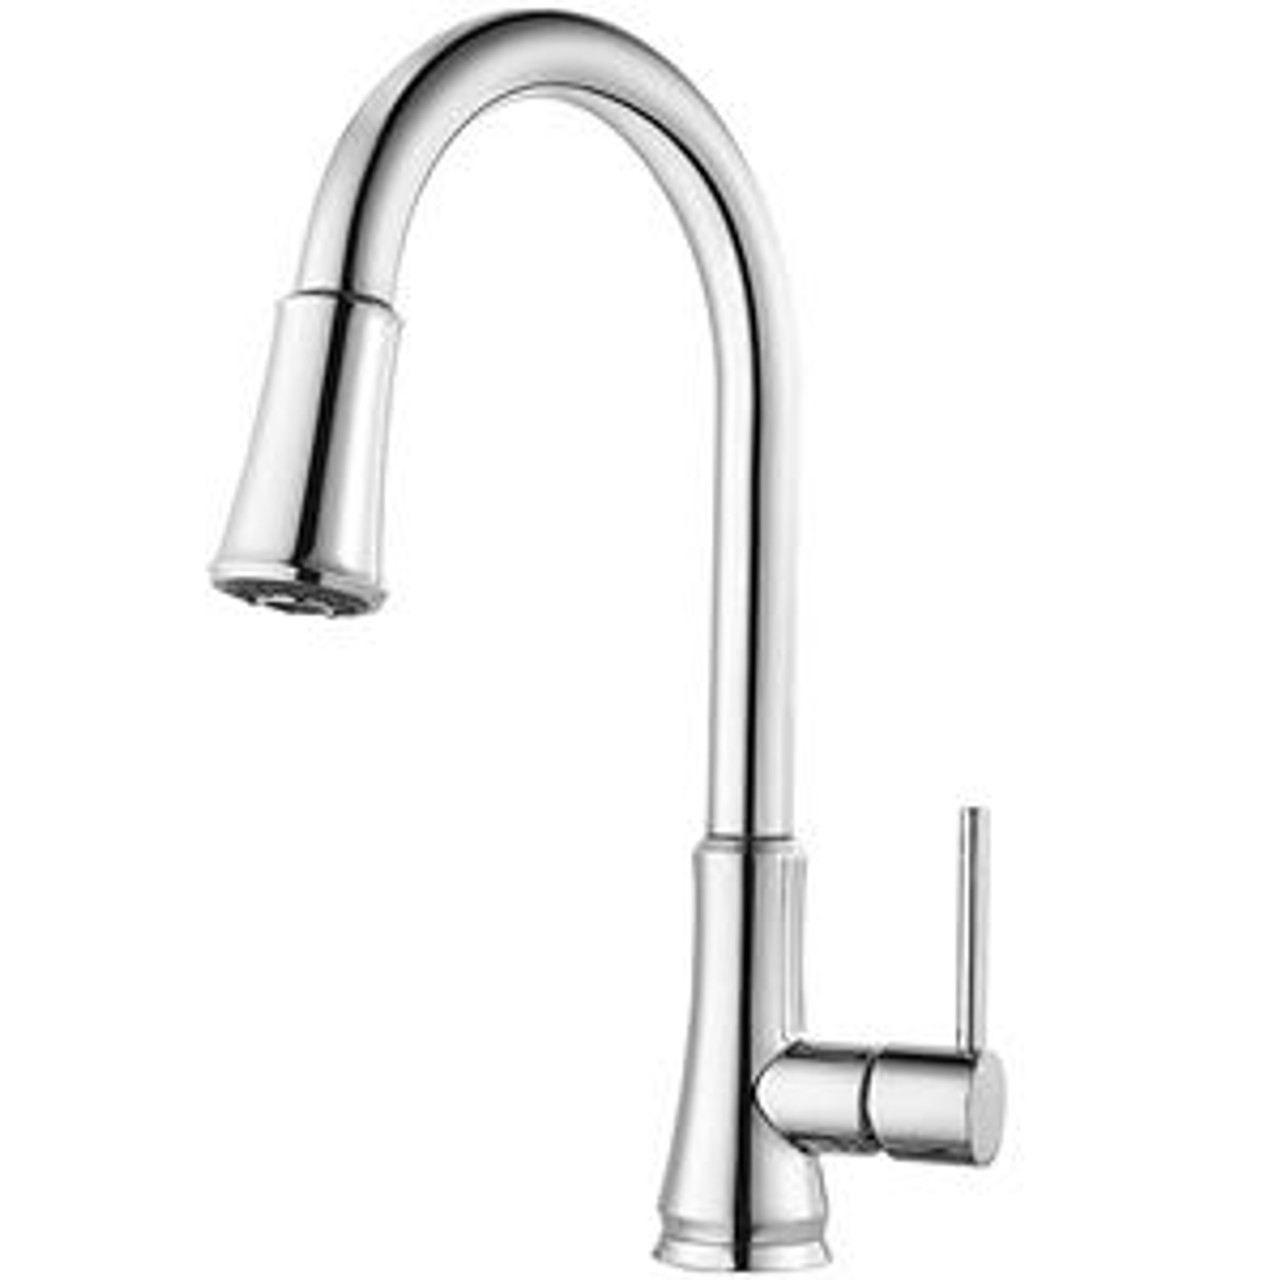 pfister g529 pf1s pfirst metal 1 lever handle pulldown spray kitchen faucet stainless steel